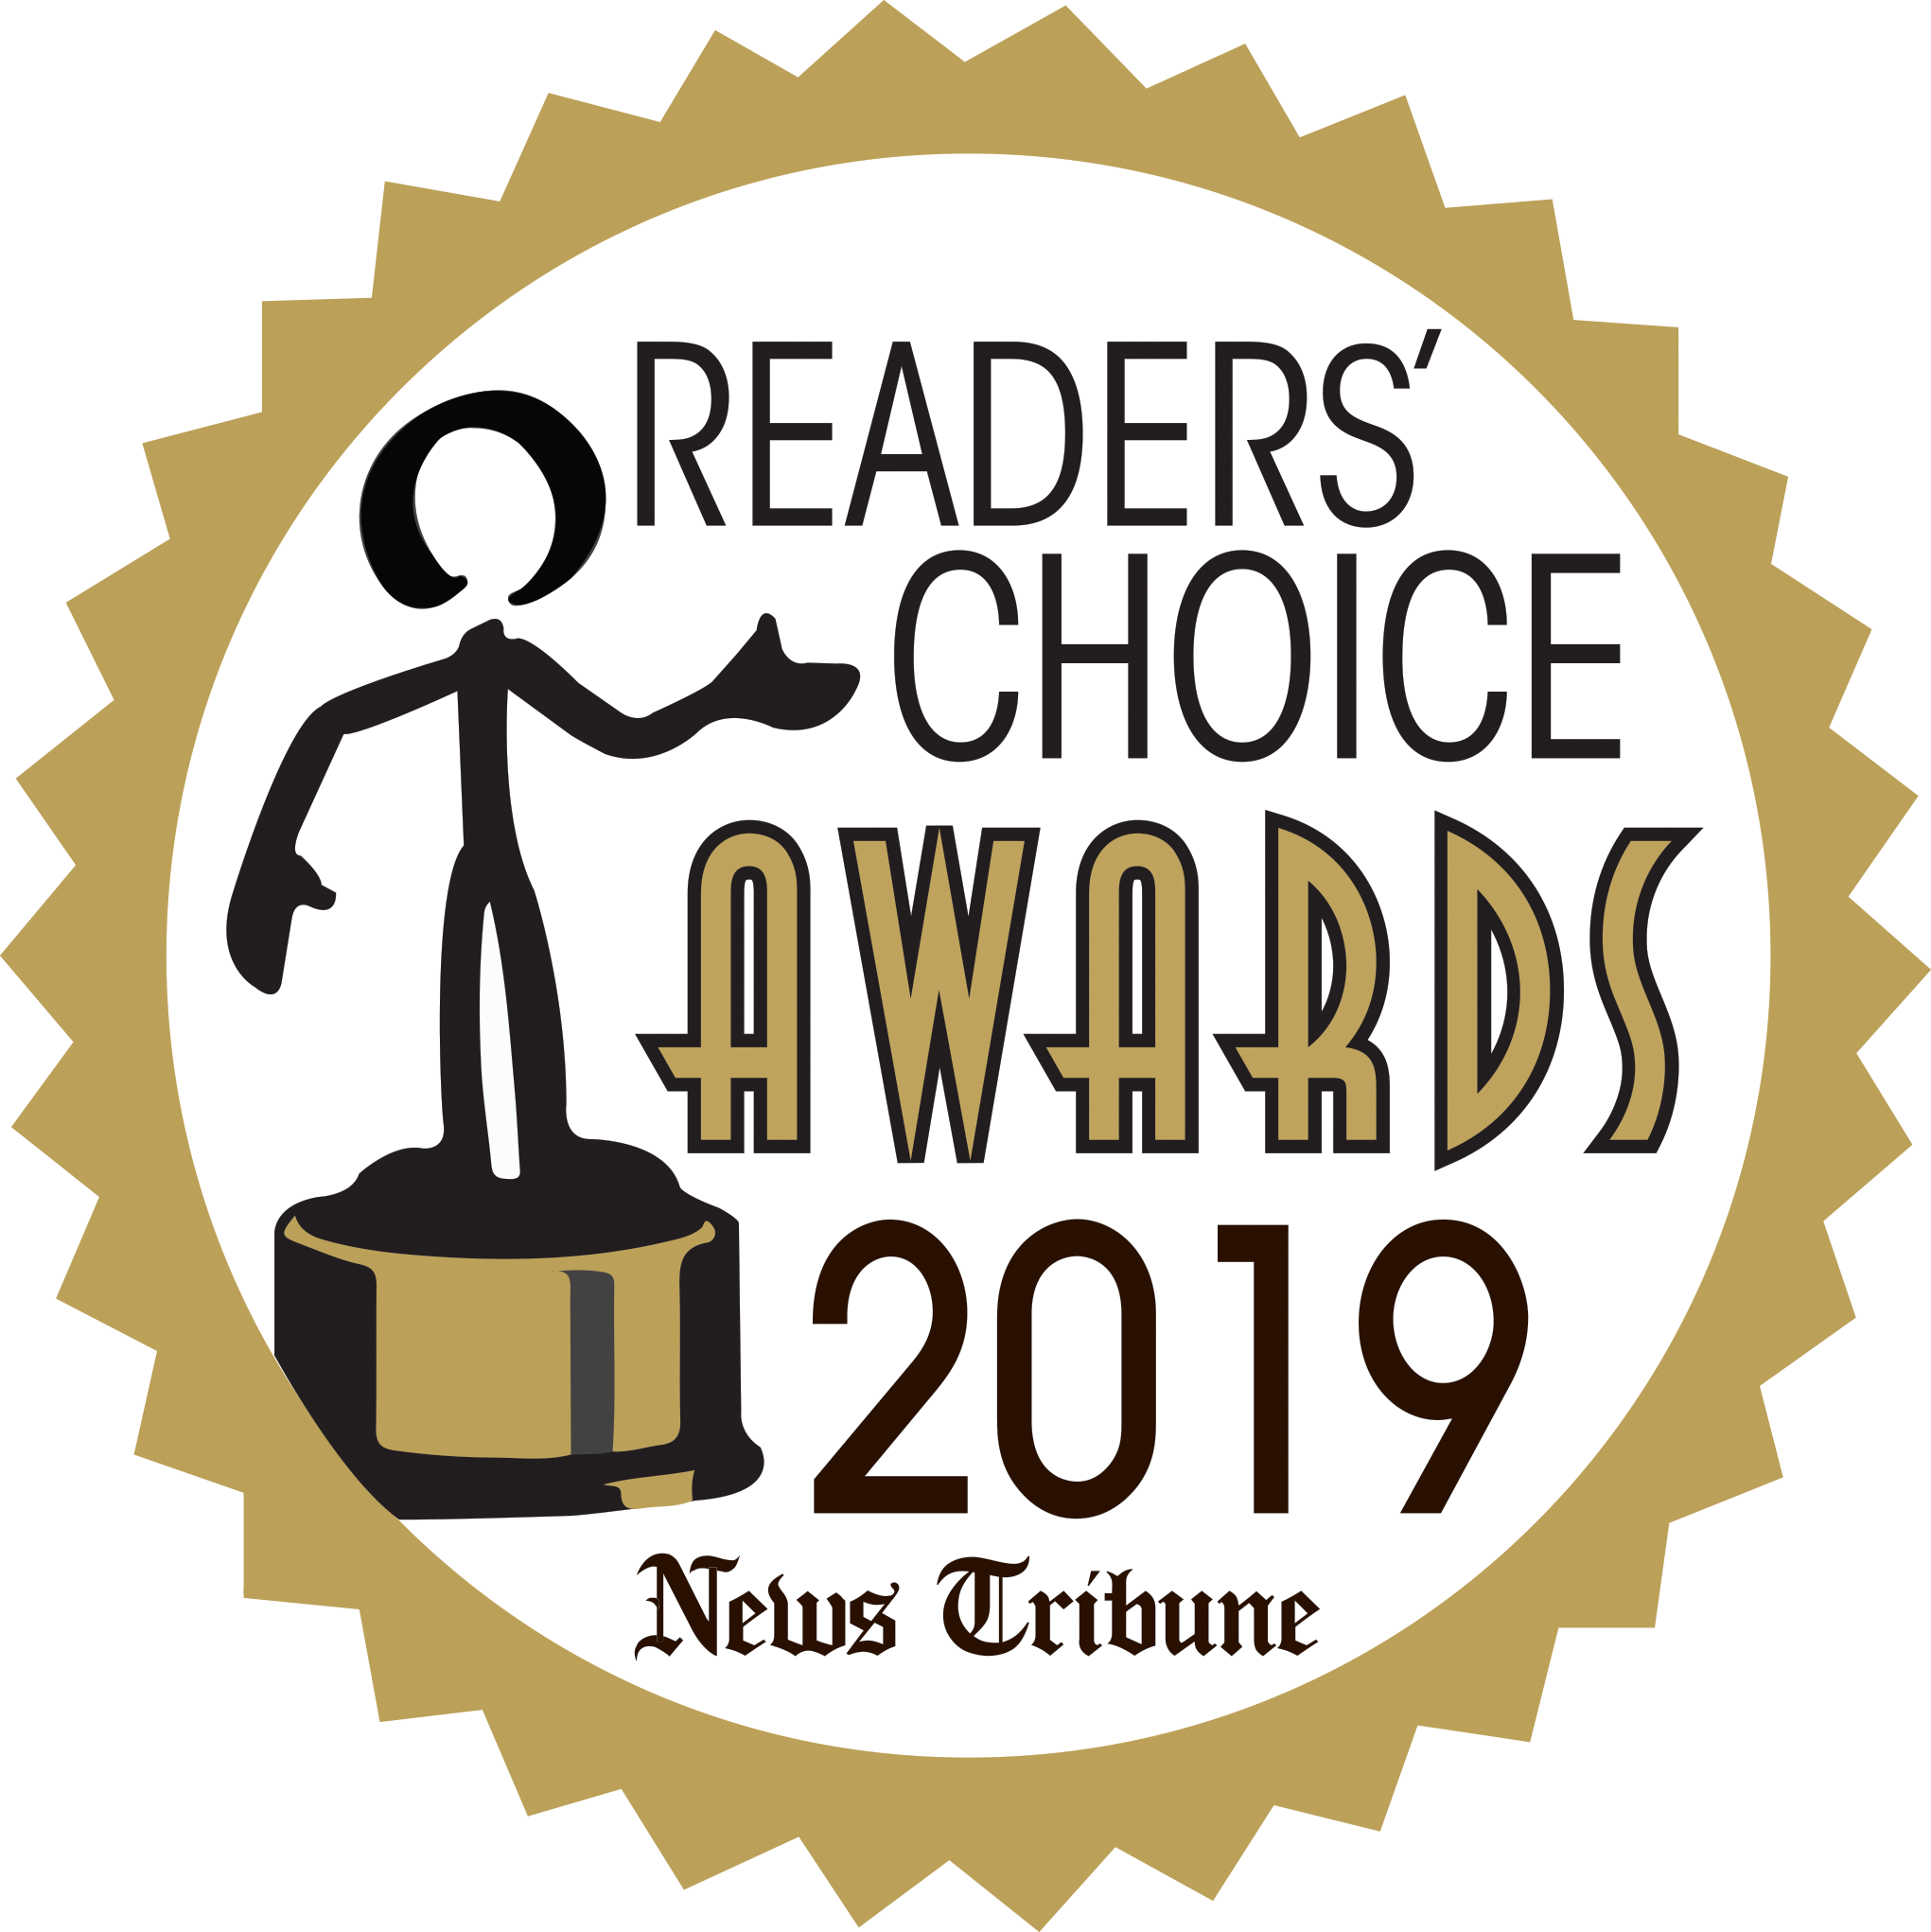 Voted #1 Pet Store in Jefferson City's Readers' Choice Awards 2019!